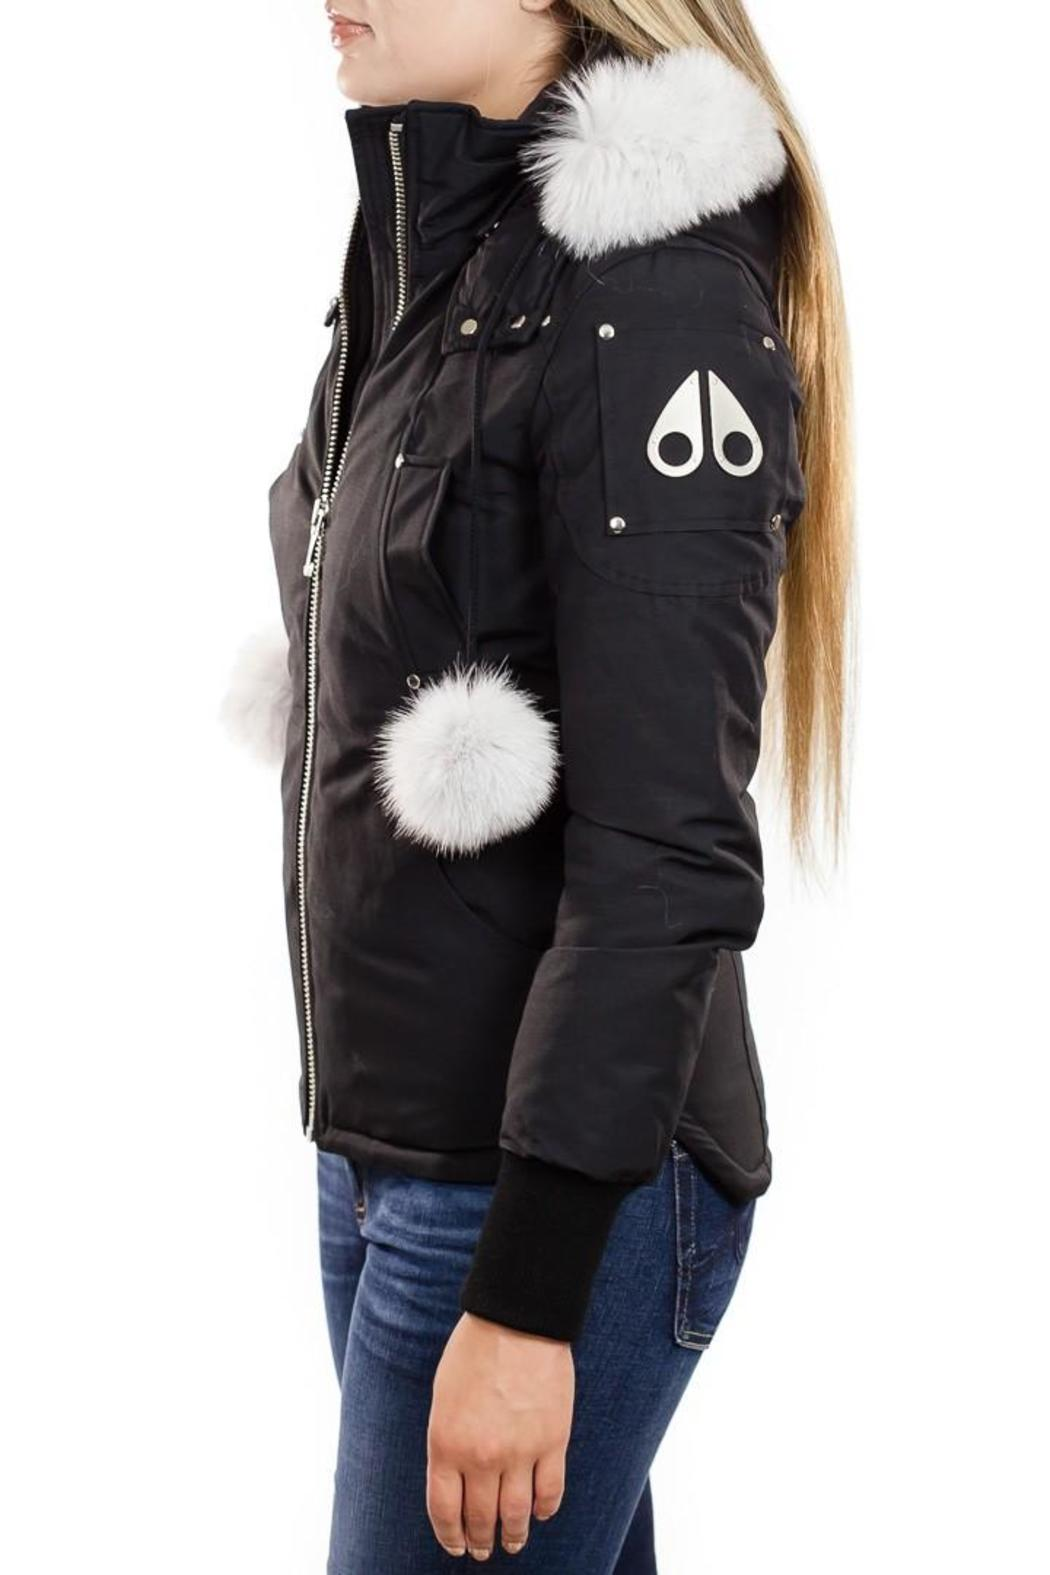 Moose Knuckles Beaver Down Jacket From Canada By Swartz